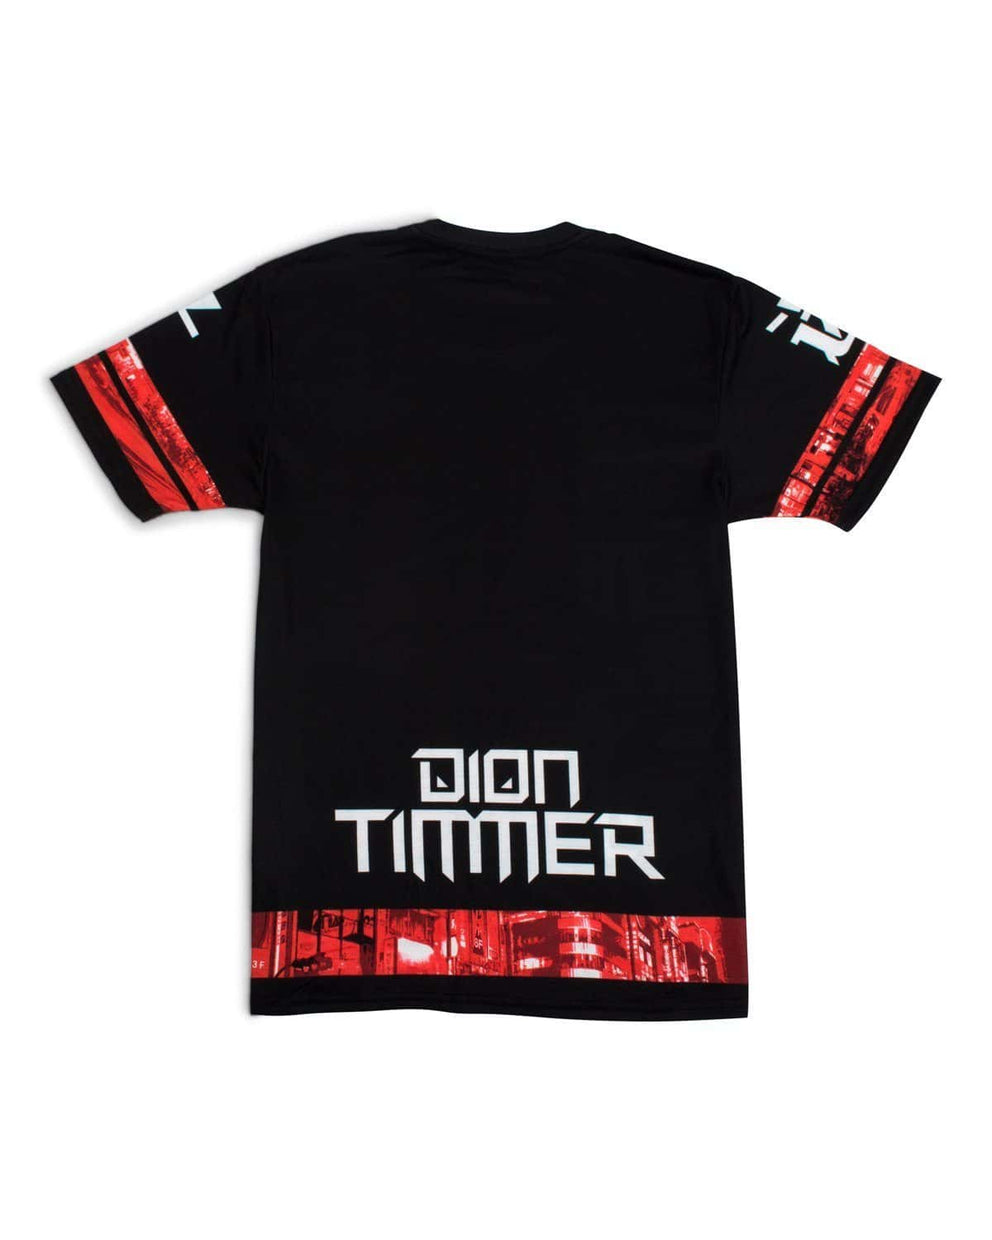 'Downtown Dion' Unisex T-Shirt - Red